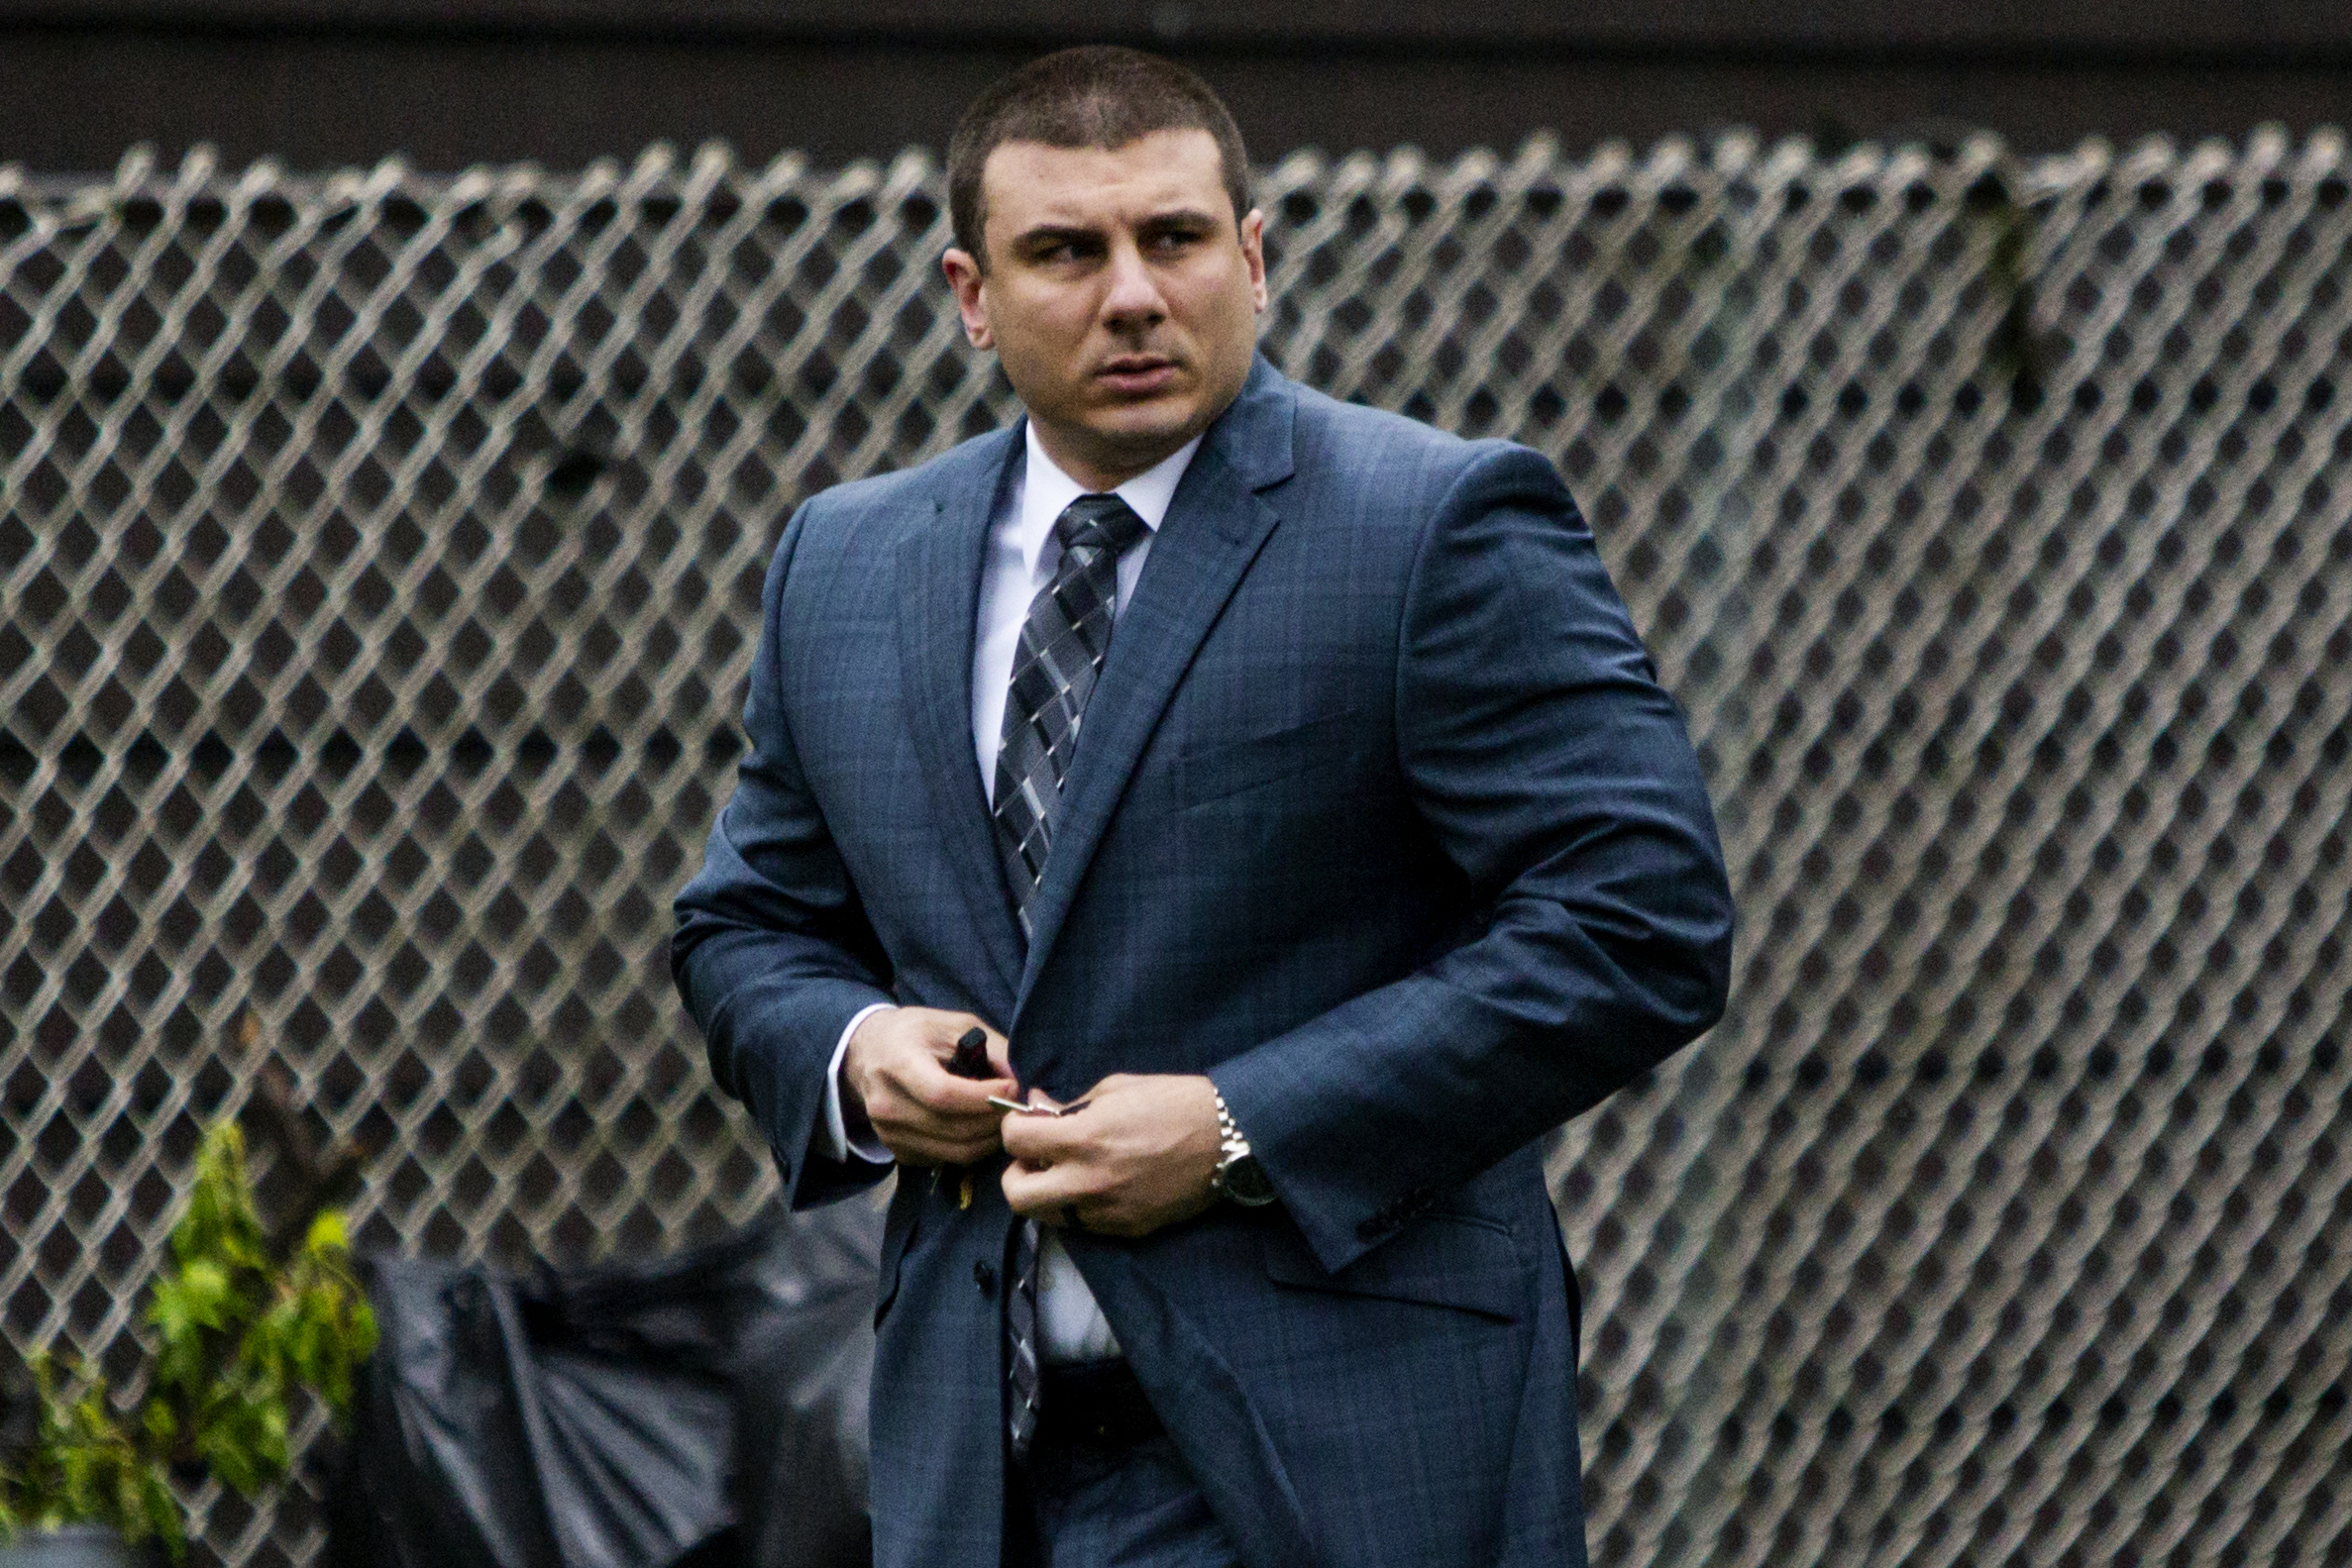 NYPD Officer Daniel Pantaleo prepares for his departmental trial in May. He faces charges for choking Eric Garner. AP Photo/Eduardo Munoz Alvarez, File